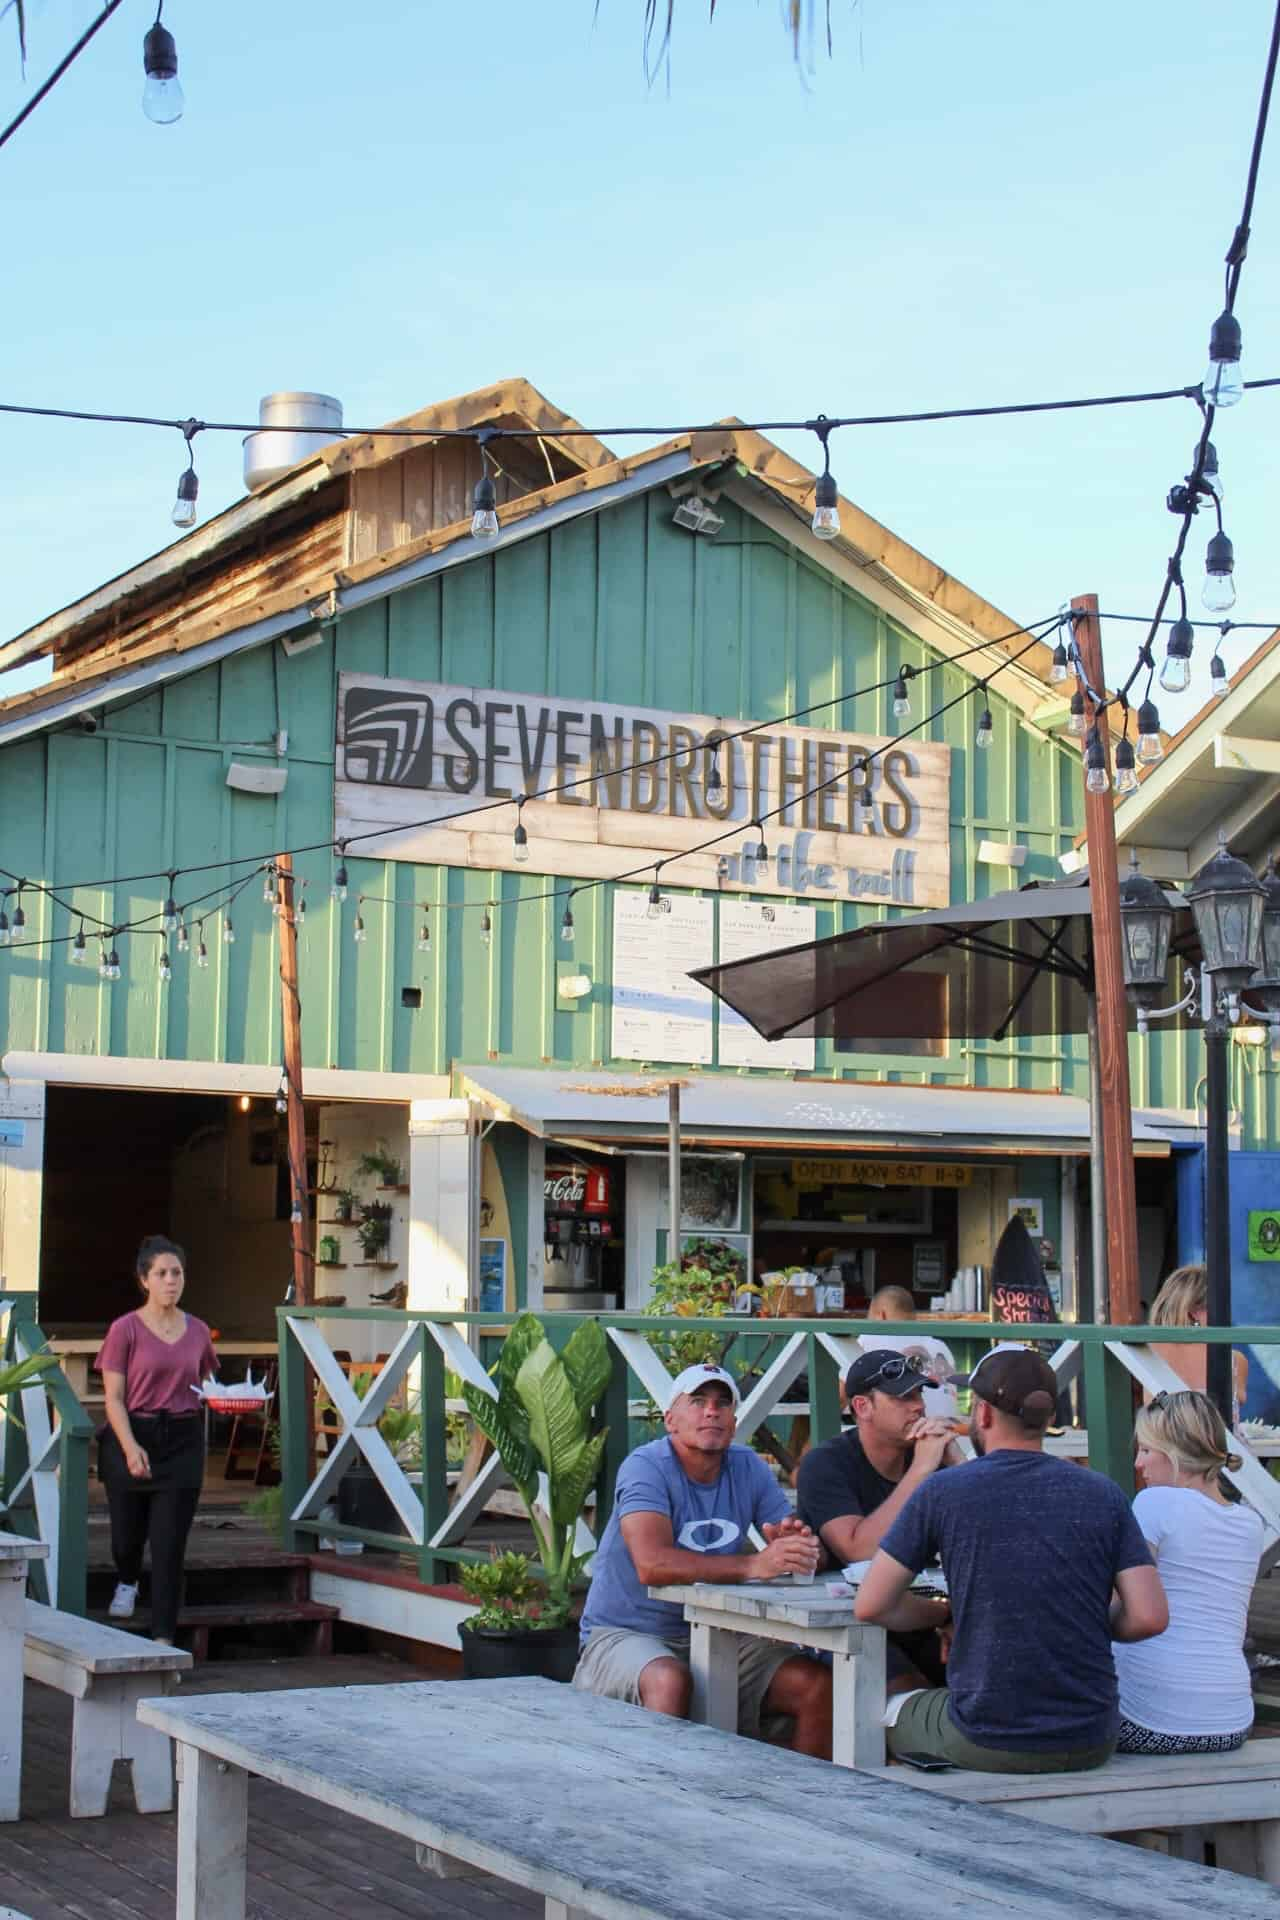 Saratoga Springs Seven Brothers Female Foodie